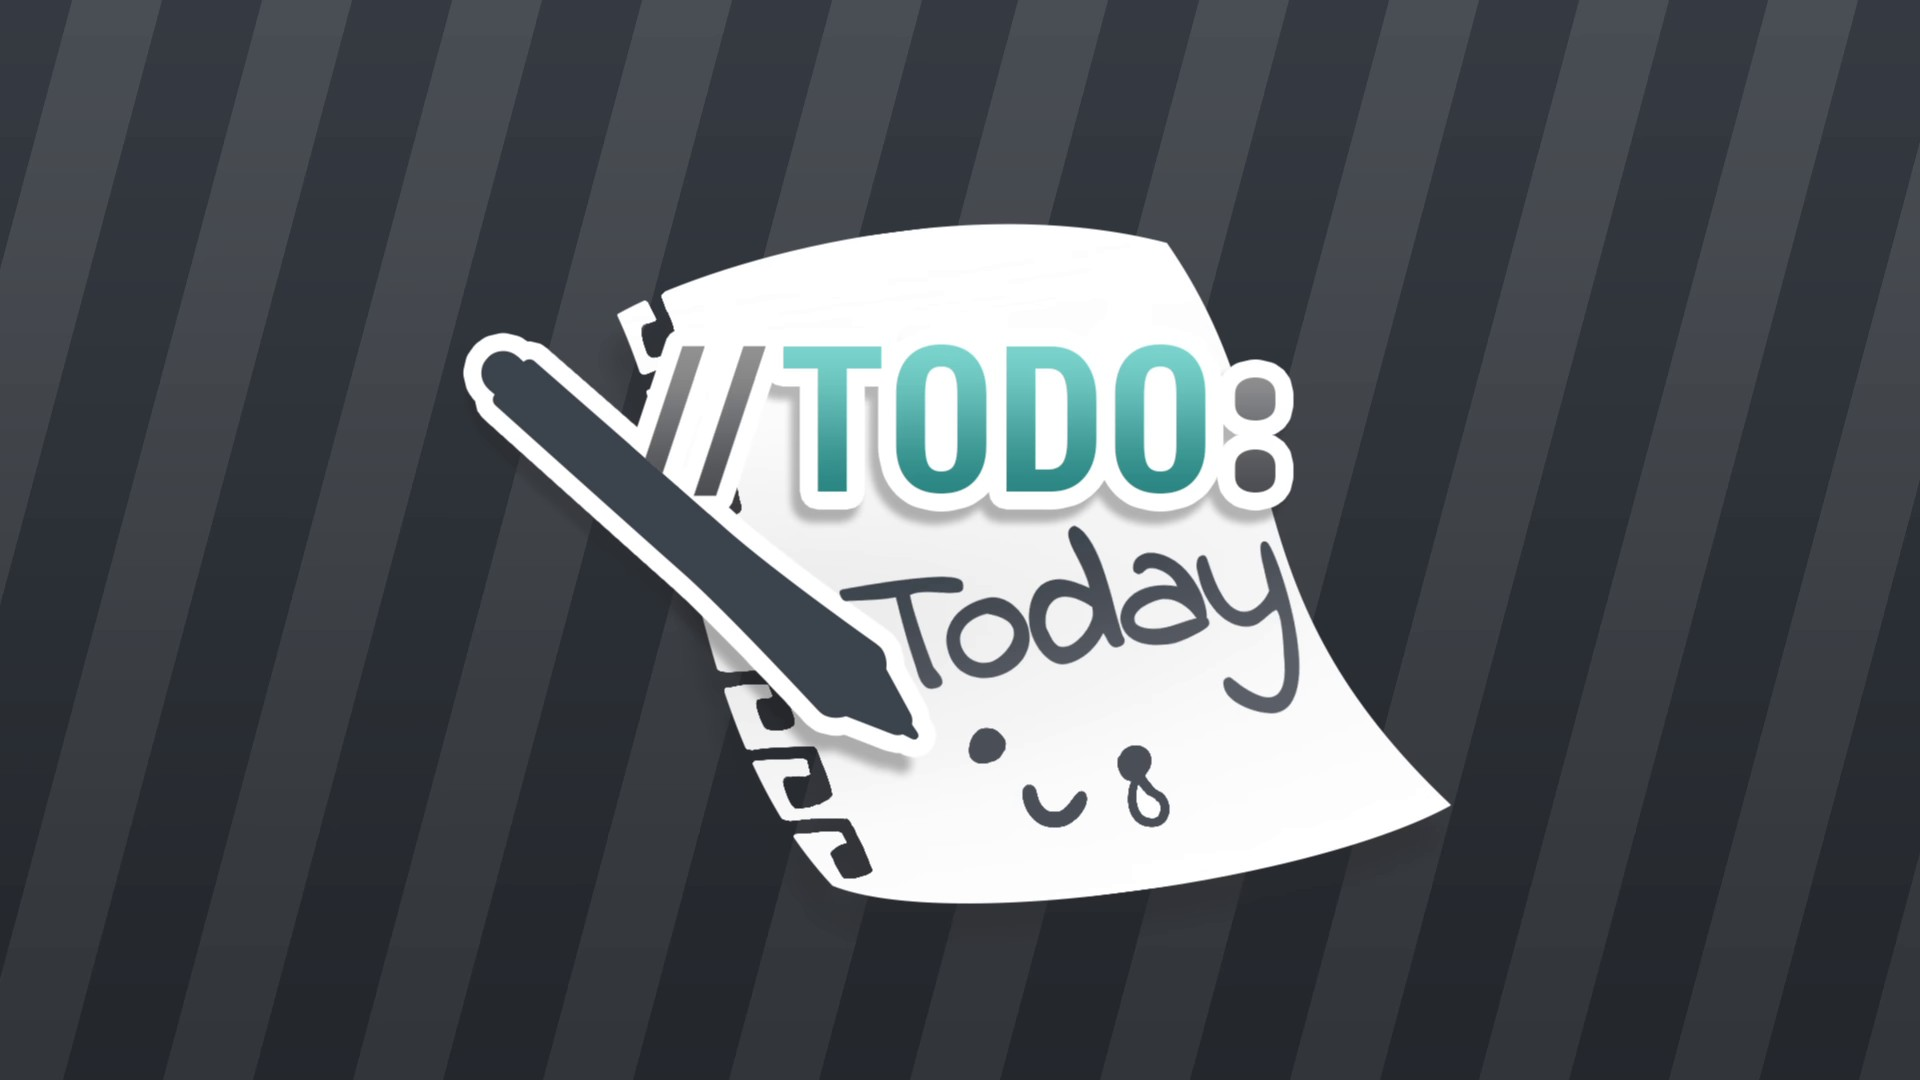 //TODO: Today - Feature Image